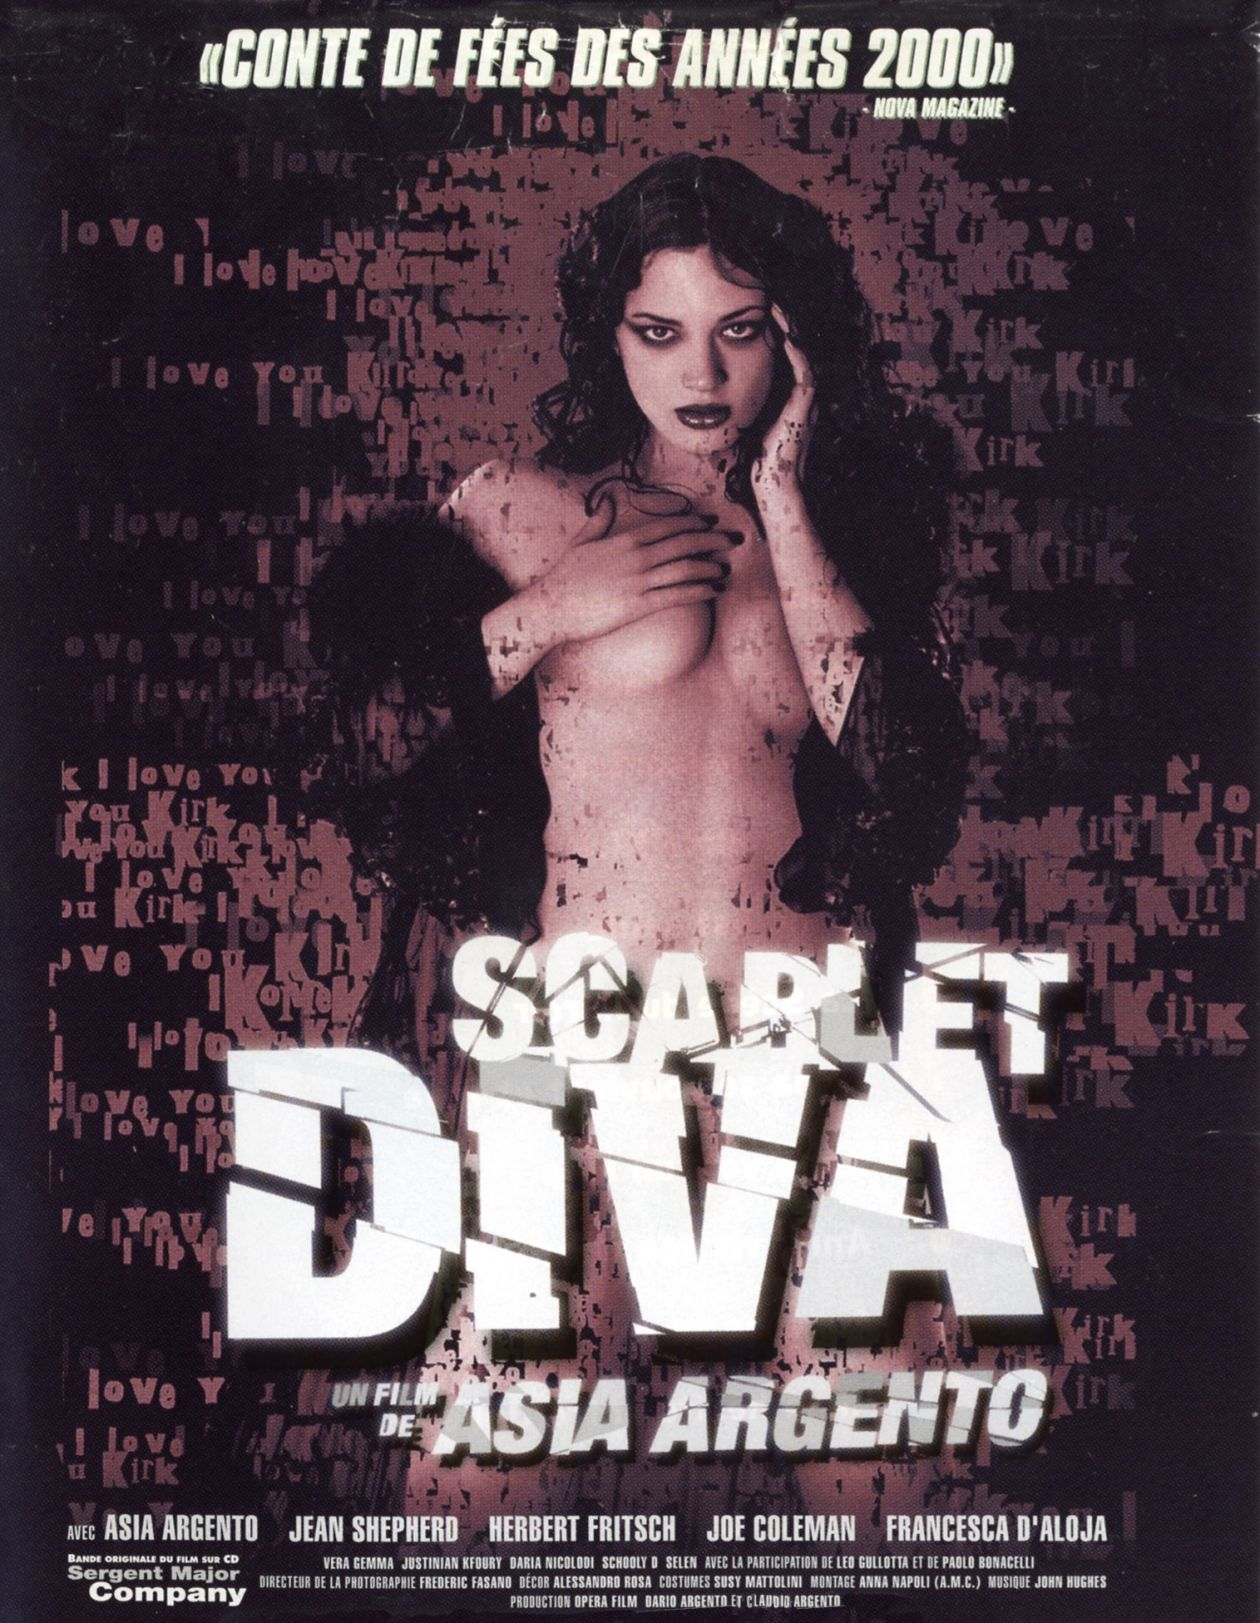 Asia Argento actress / Scarlet Diva / Asia Argento 2000 / Movie Poster Affiche film